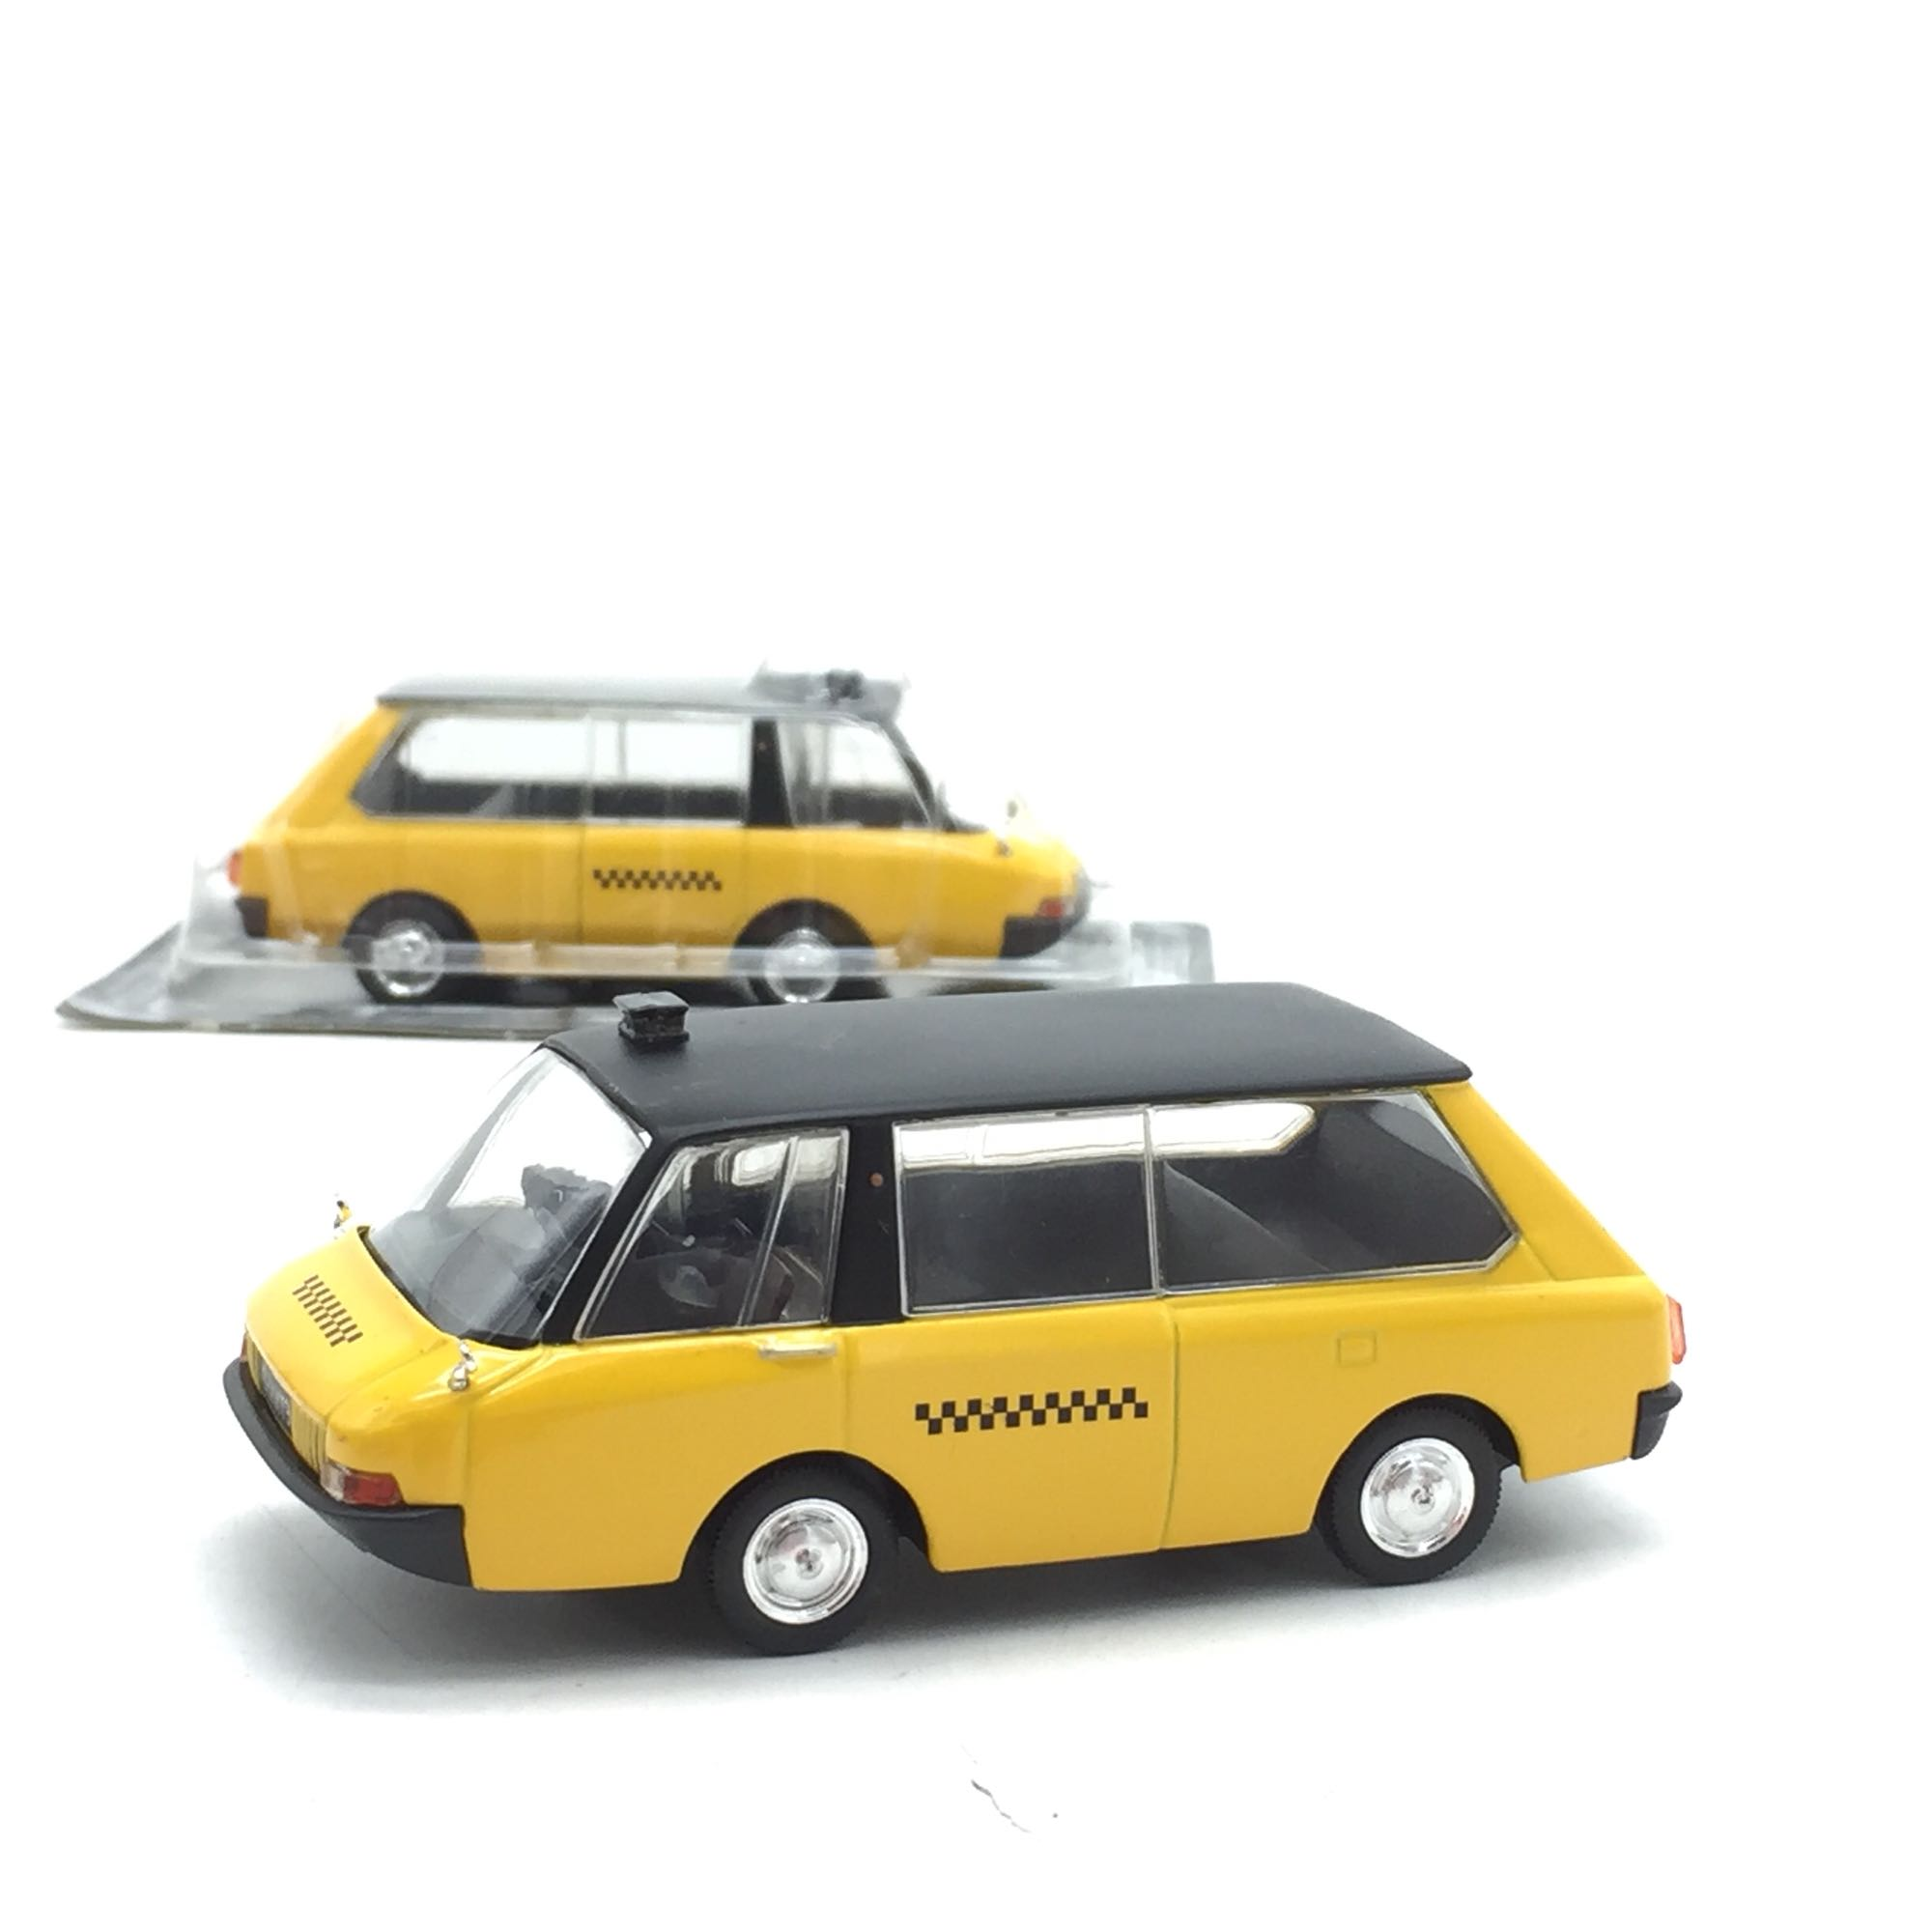 1:43 The Soviet Union Taxi Alloy Car Collection Home Decoration Model Toys 10cm